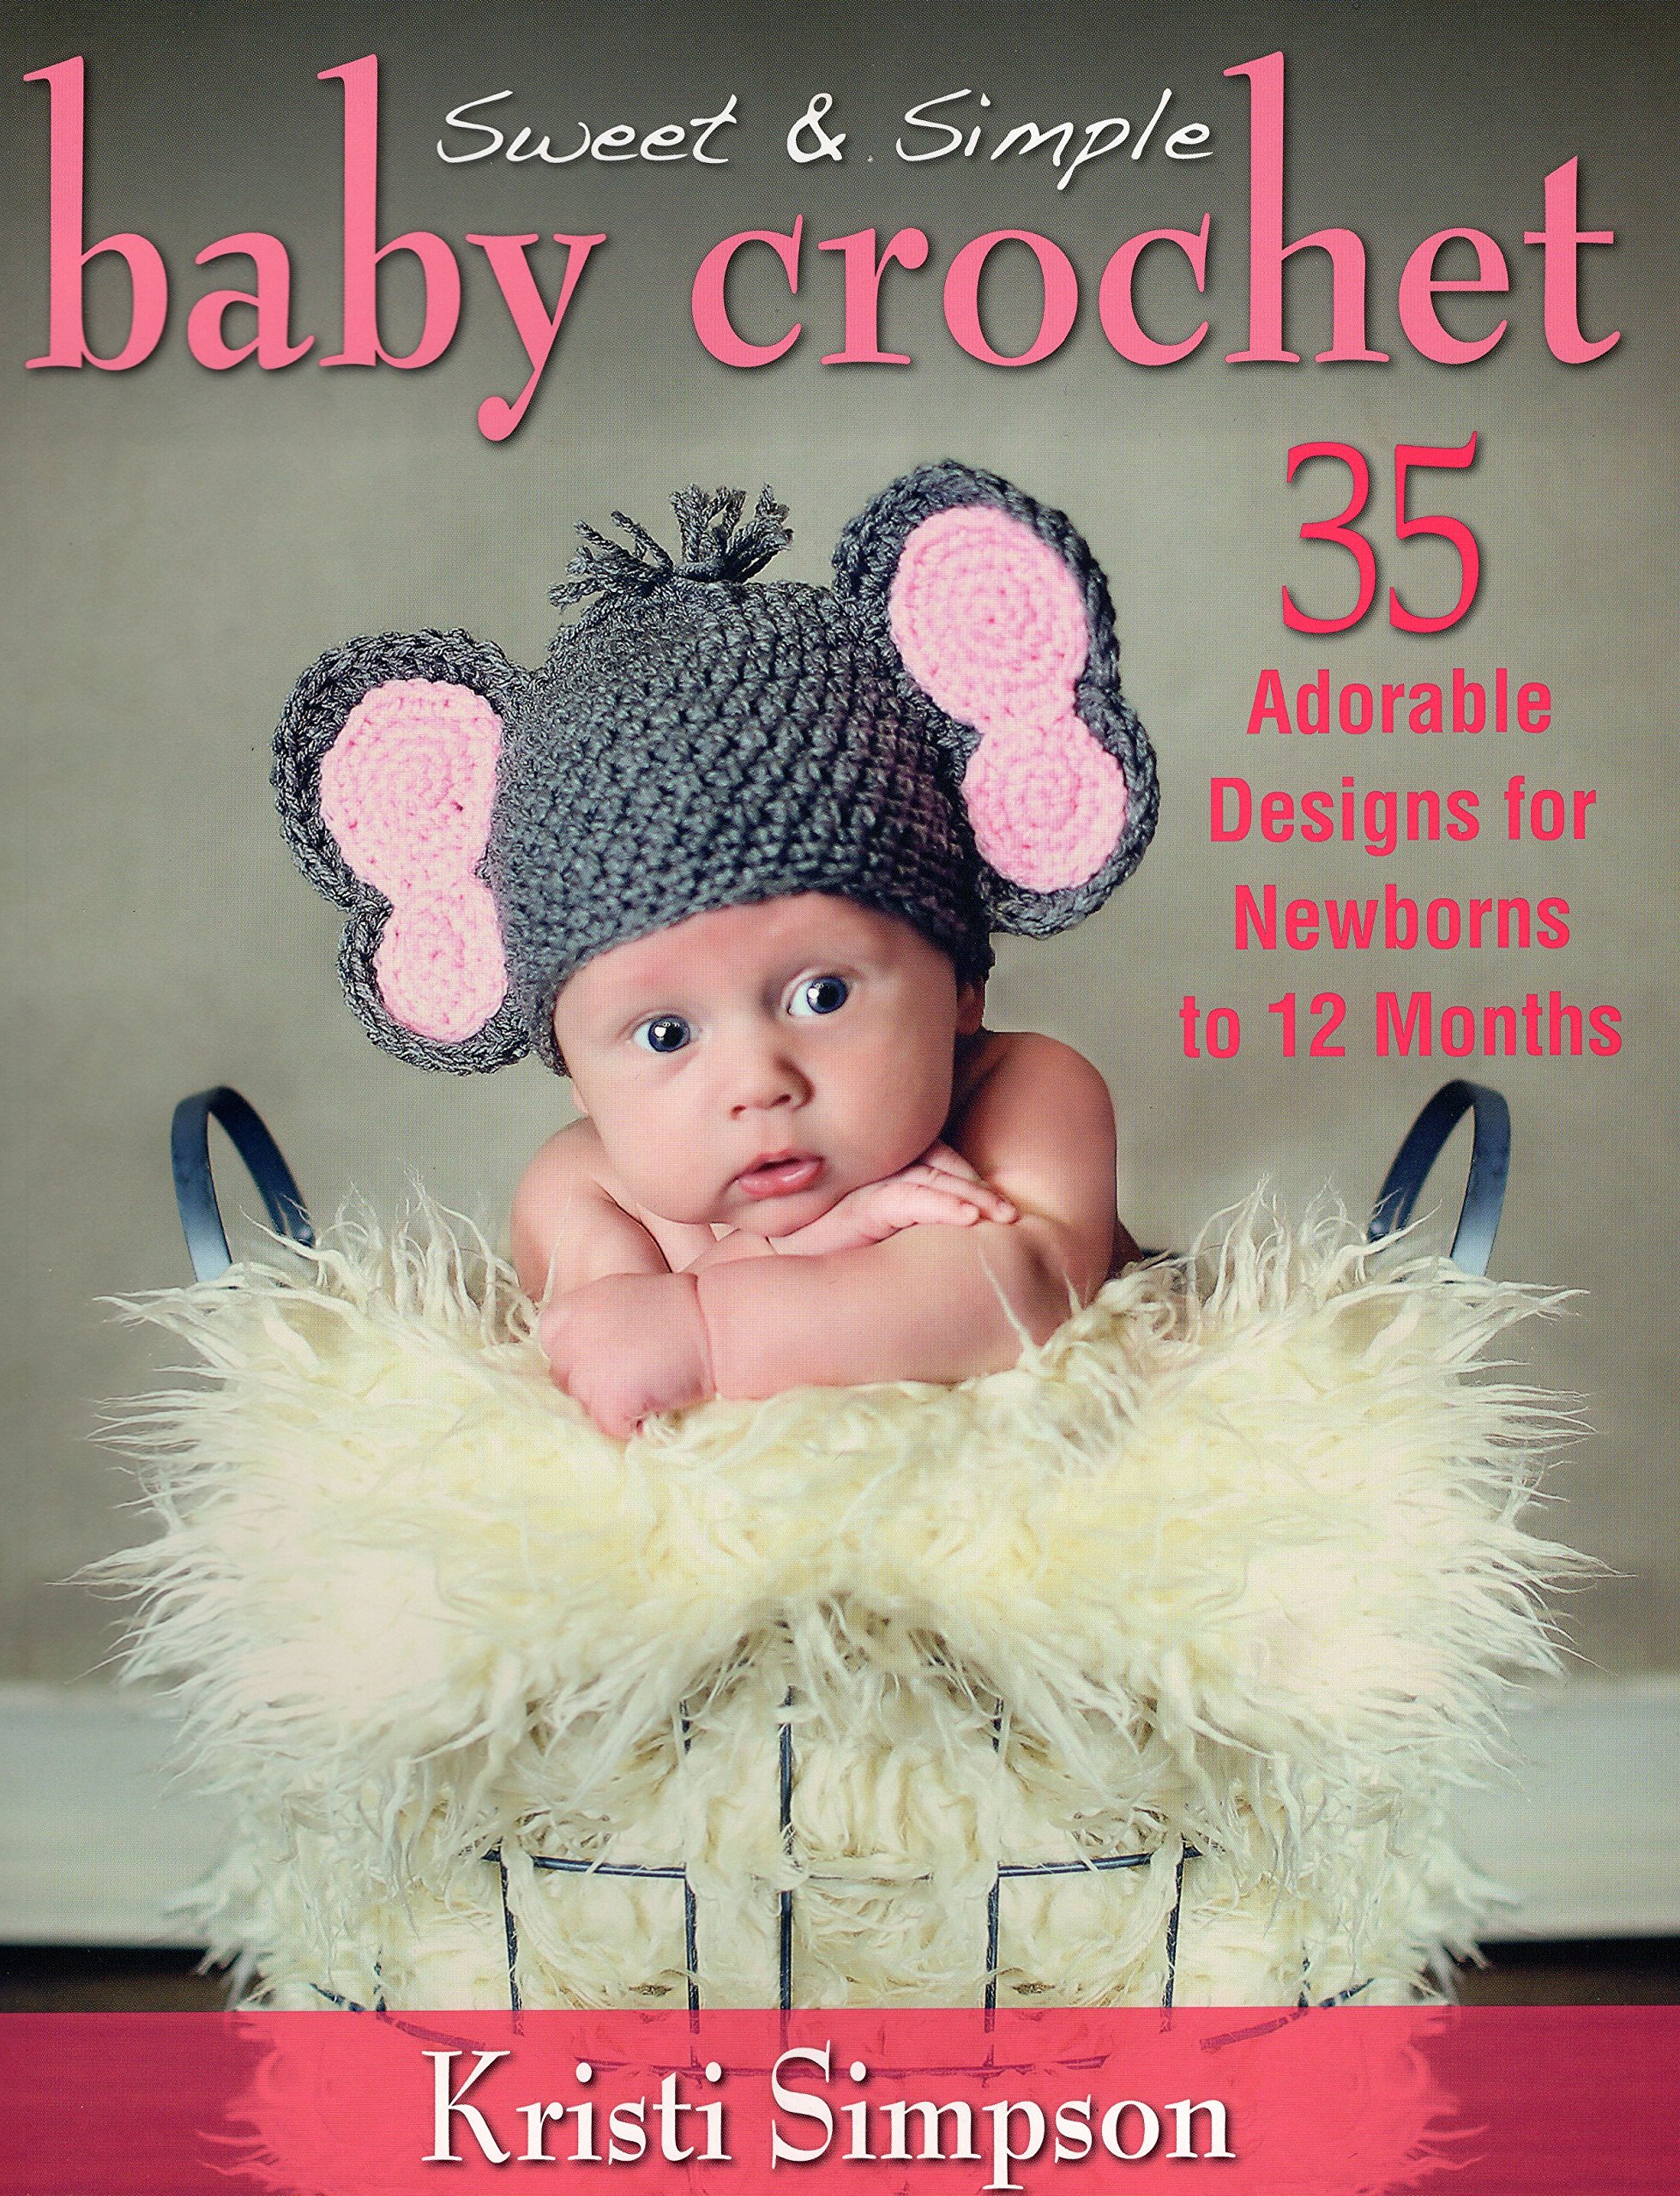 Sweet & Simple Baby Crochet: 35 Adorable Designs for